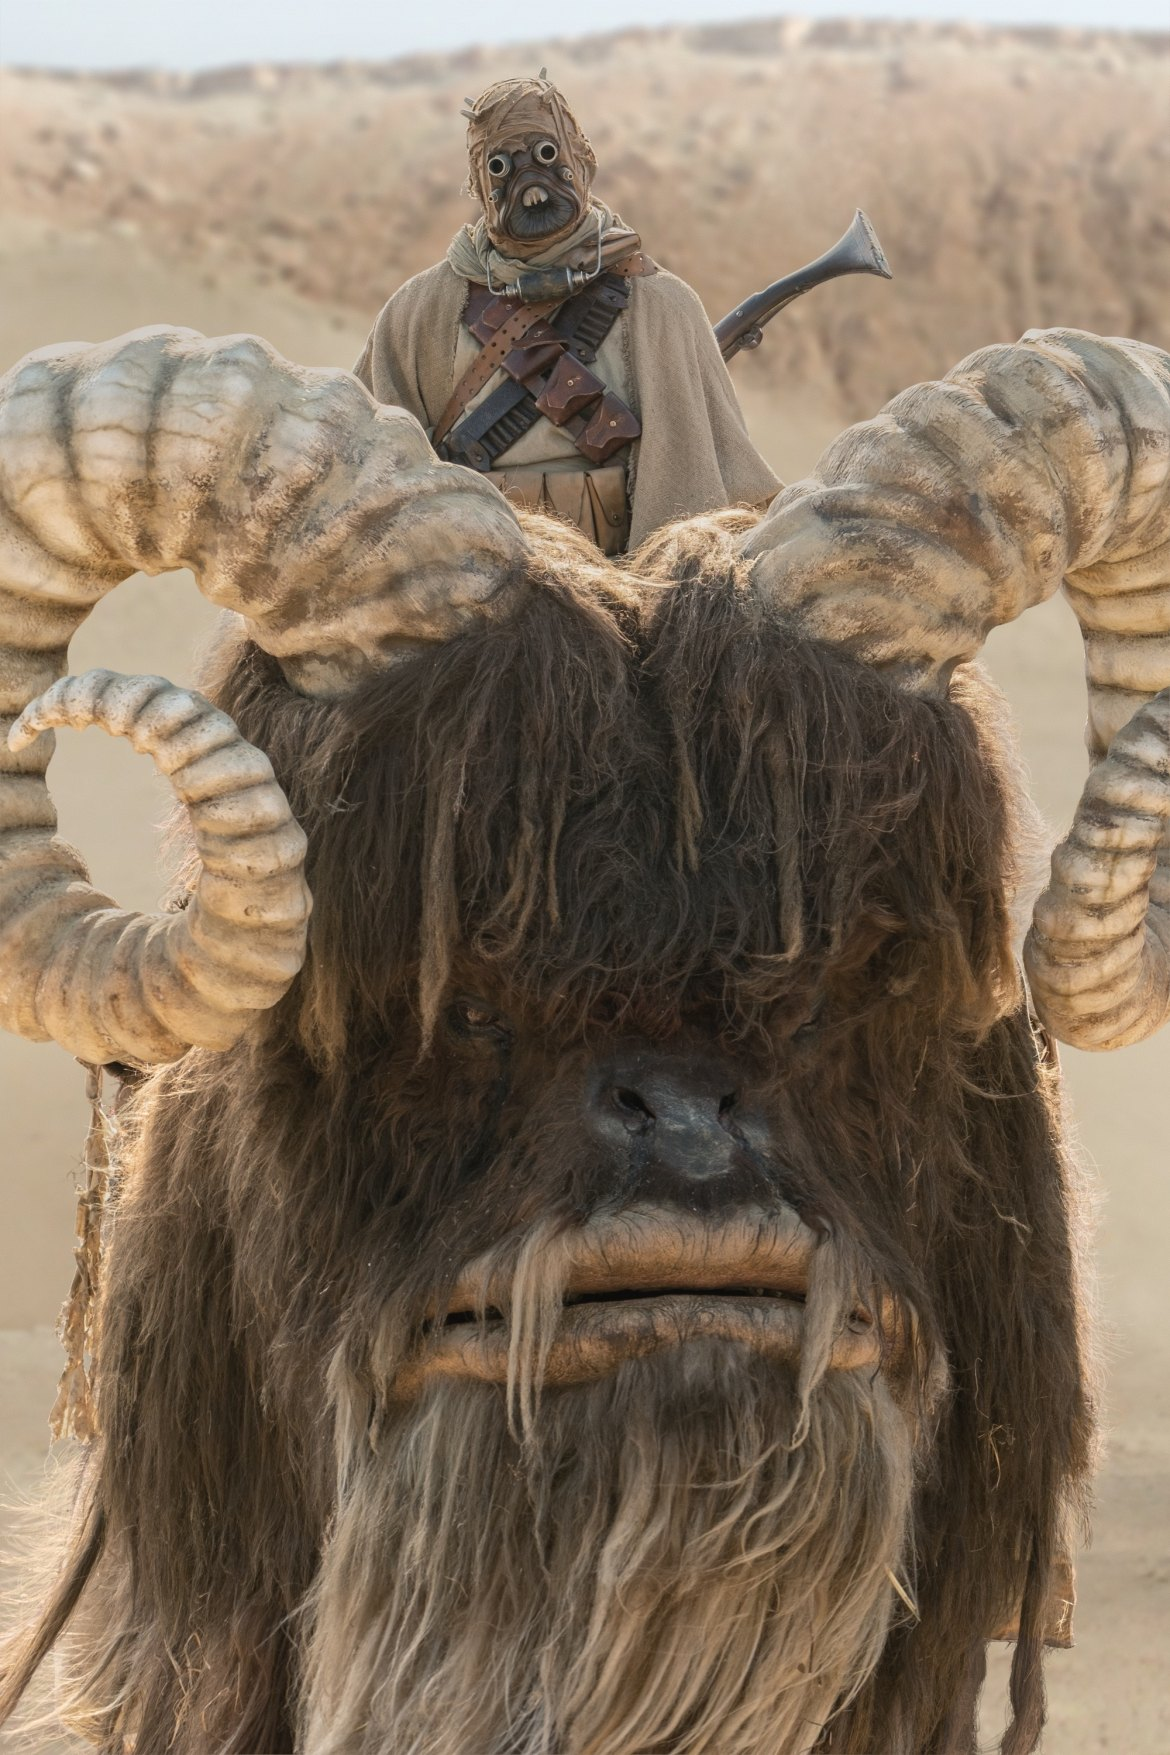 Tusken Raider and bantha in THE MANDALORIAN, season two, exclusively on Disney+